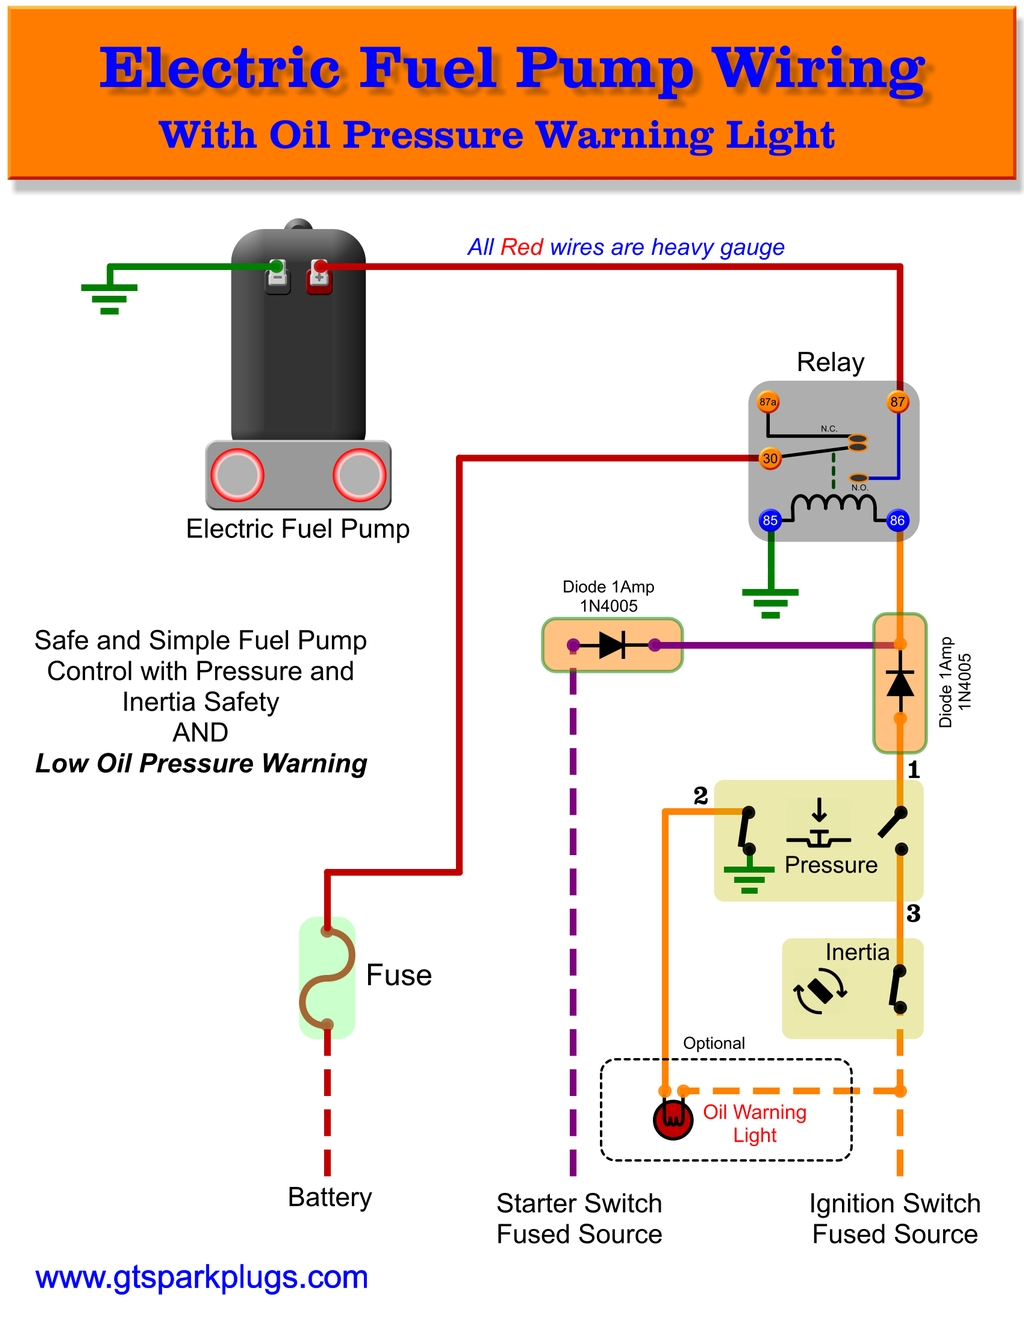 Electric Fuel Pump Wiring Diagram Wiring An Electric Fuel Pump To A